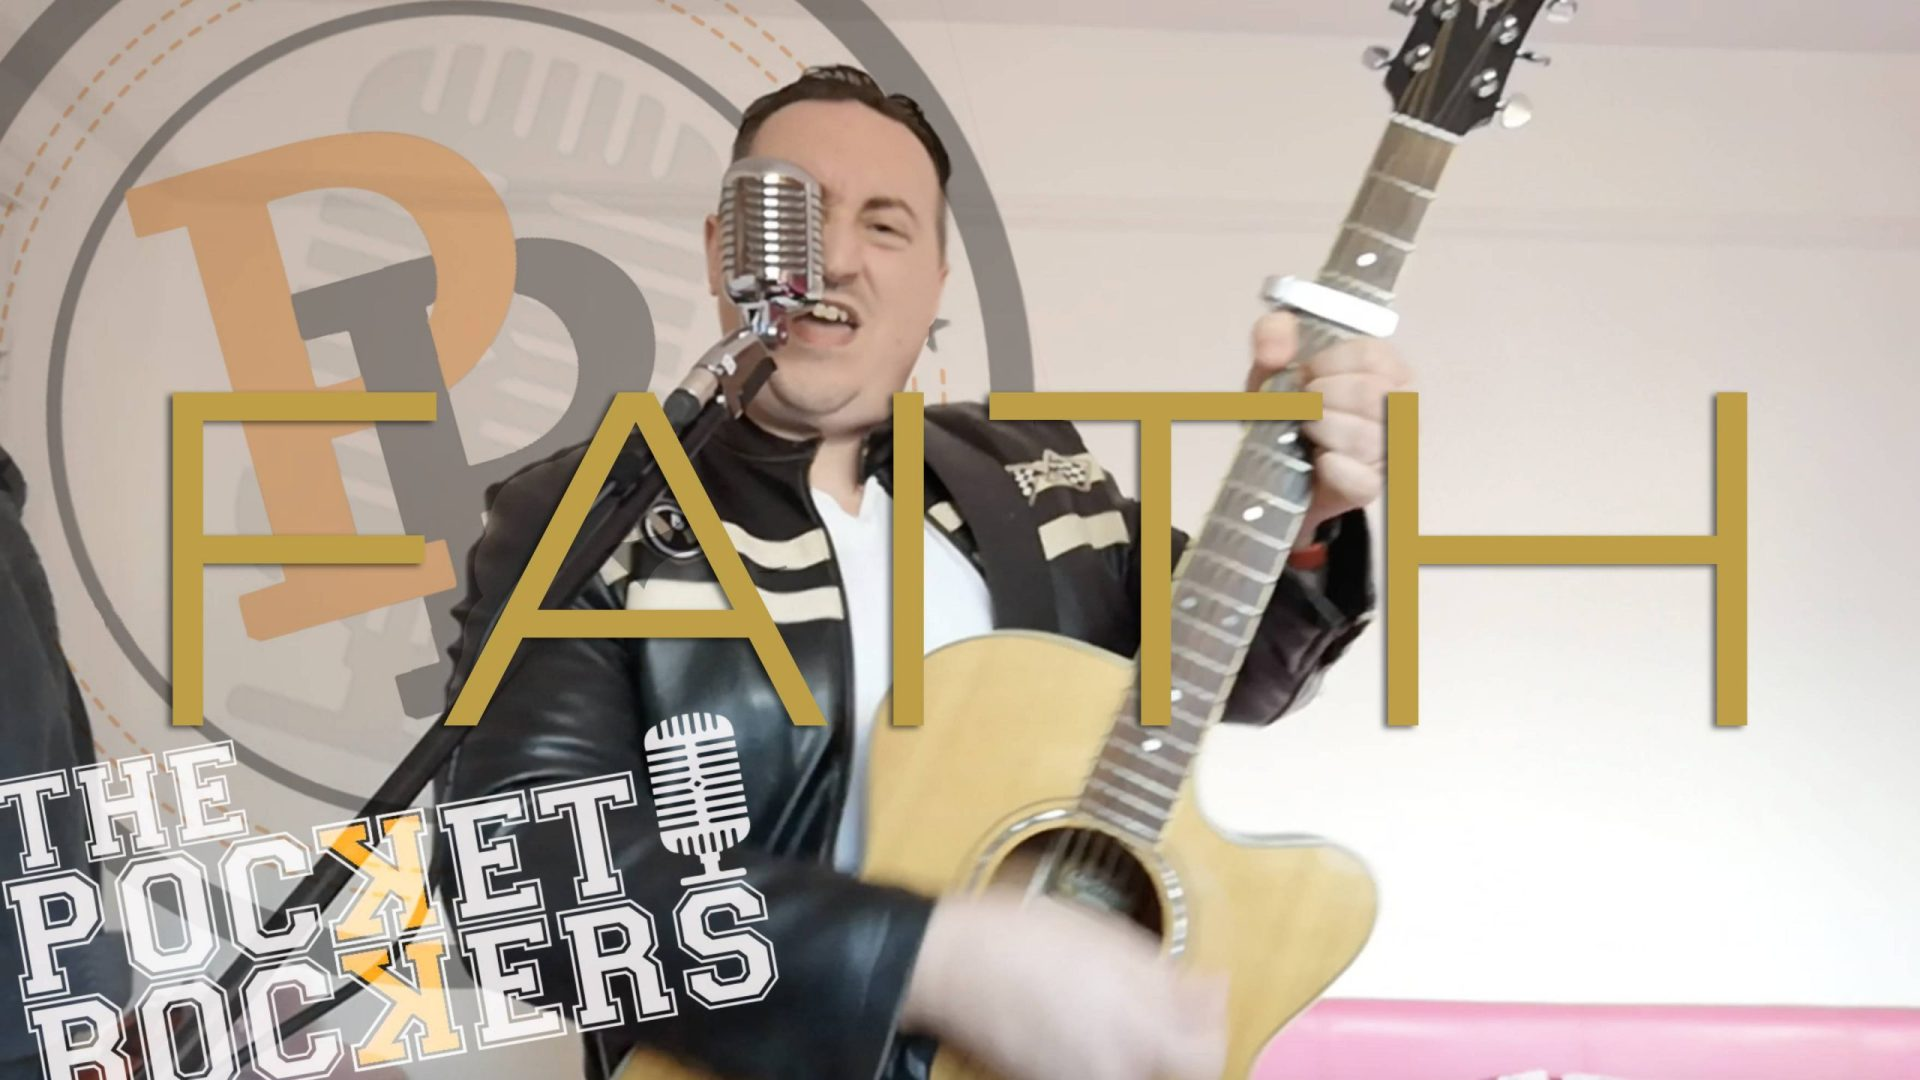 Thumbnail for the music video Faith performed by The Pocket Rockers